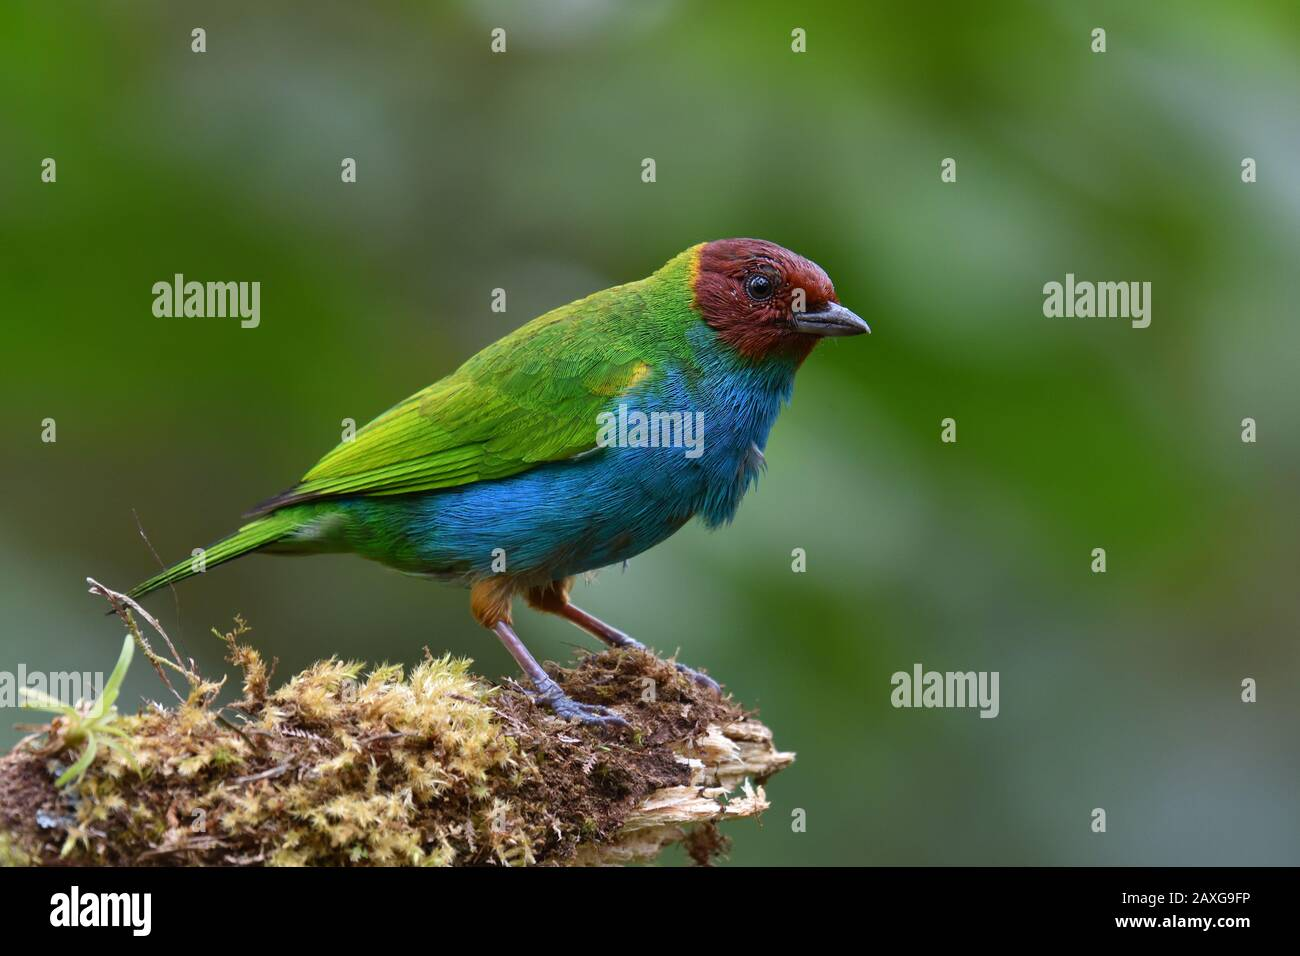 A Bay headed Tanager in Costa Rica rain forest Stock Photo